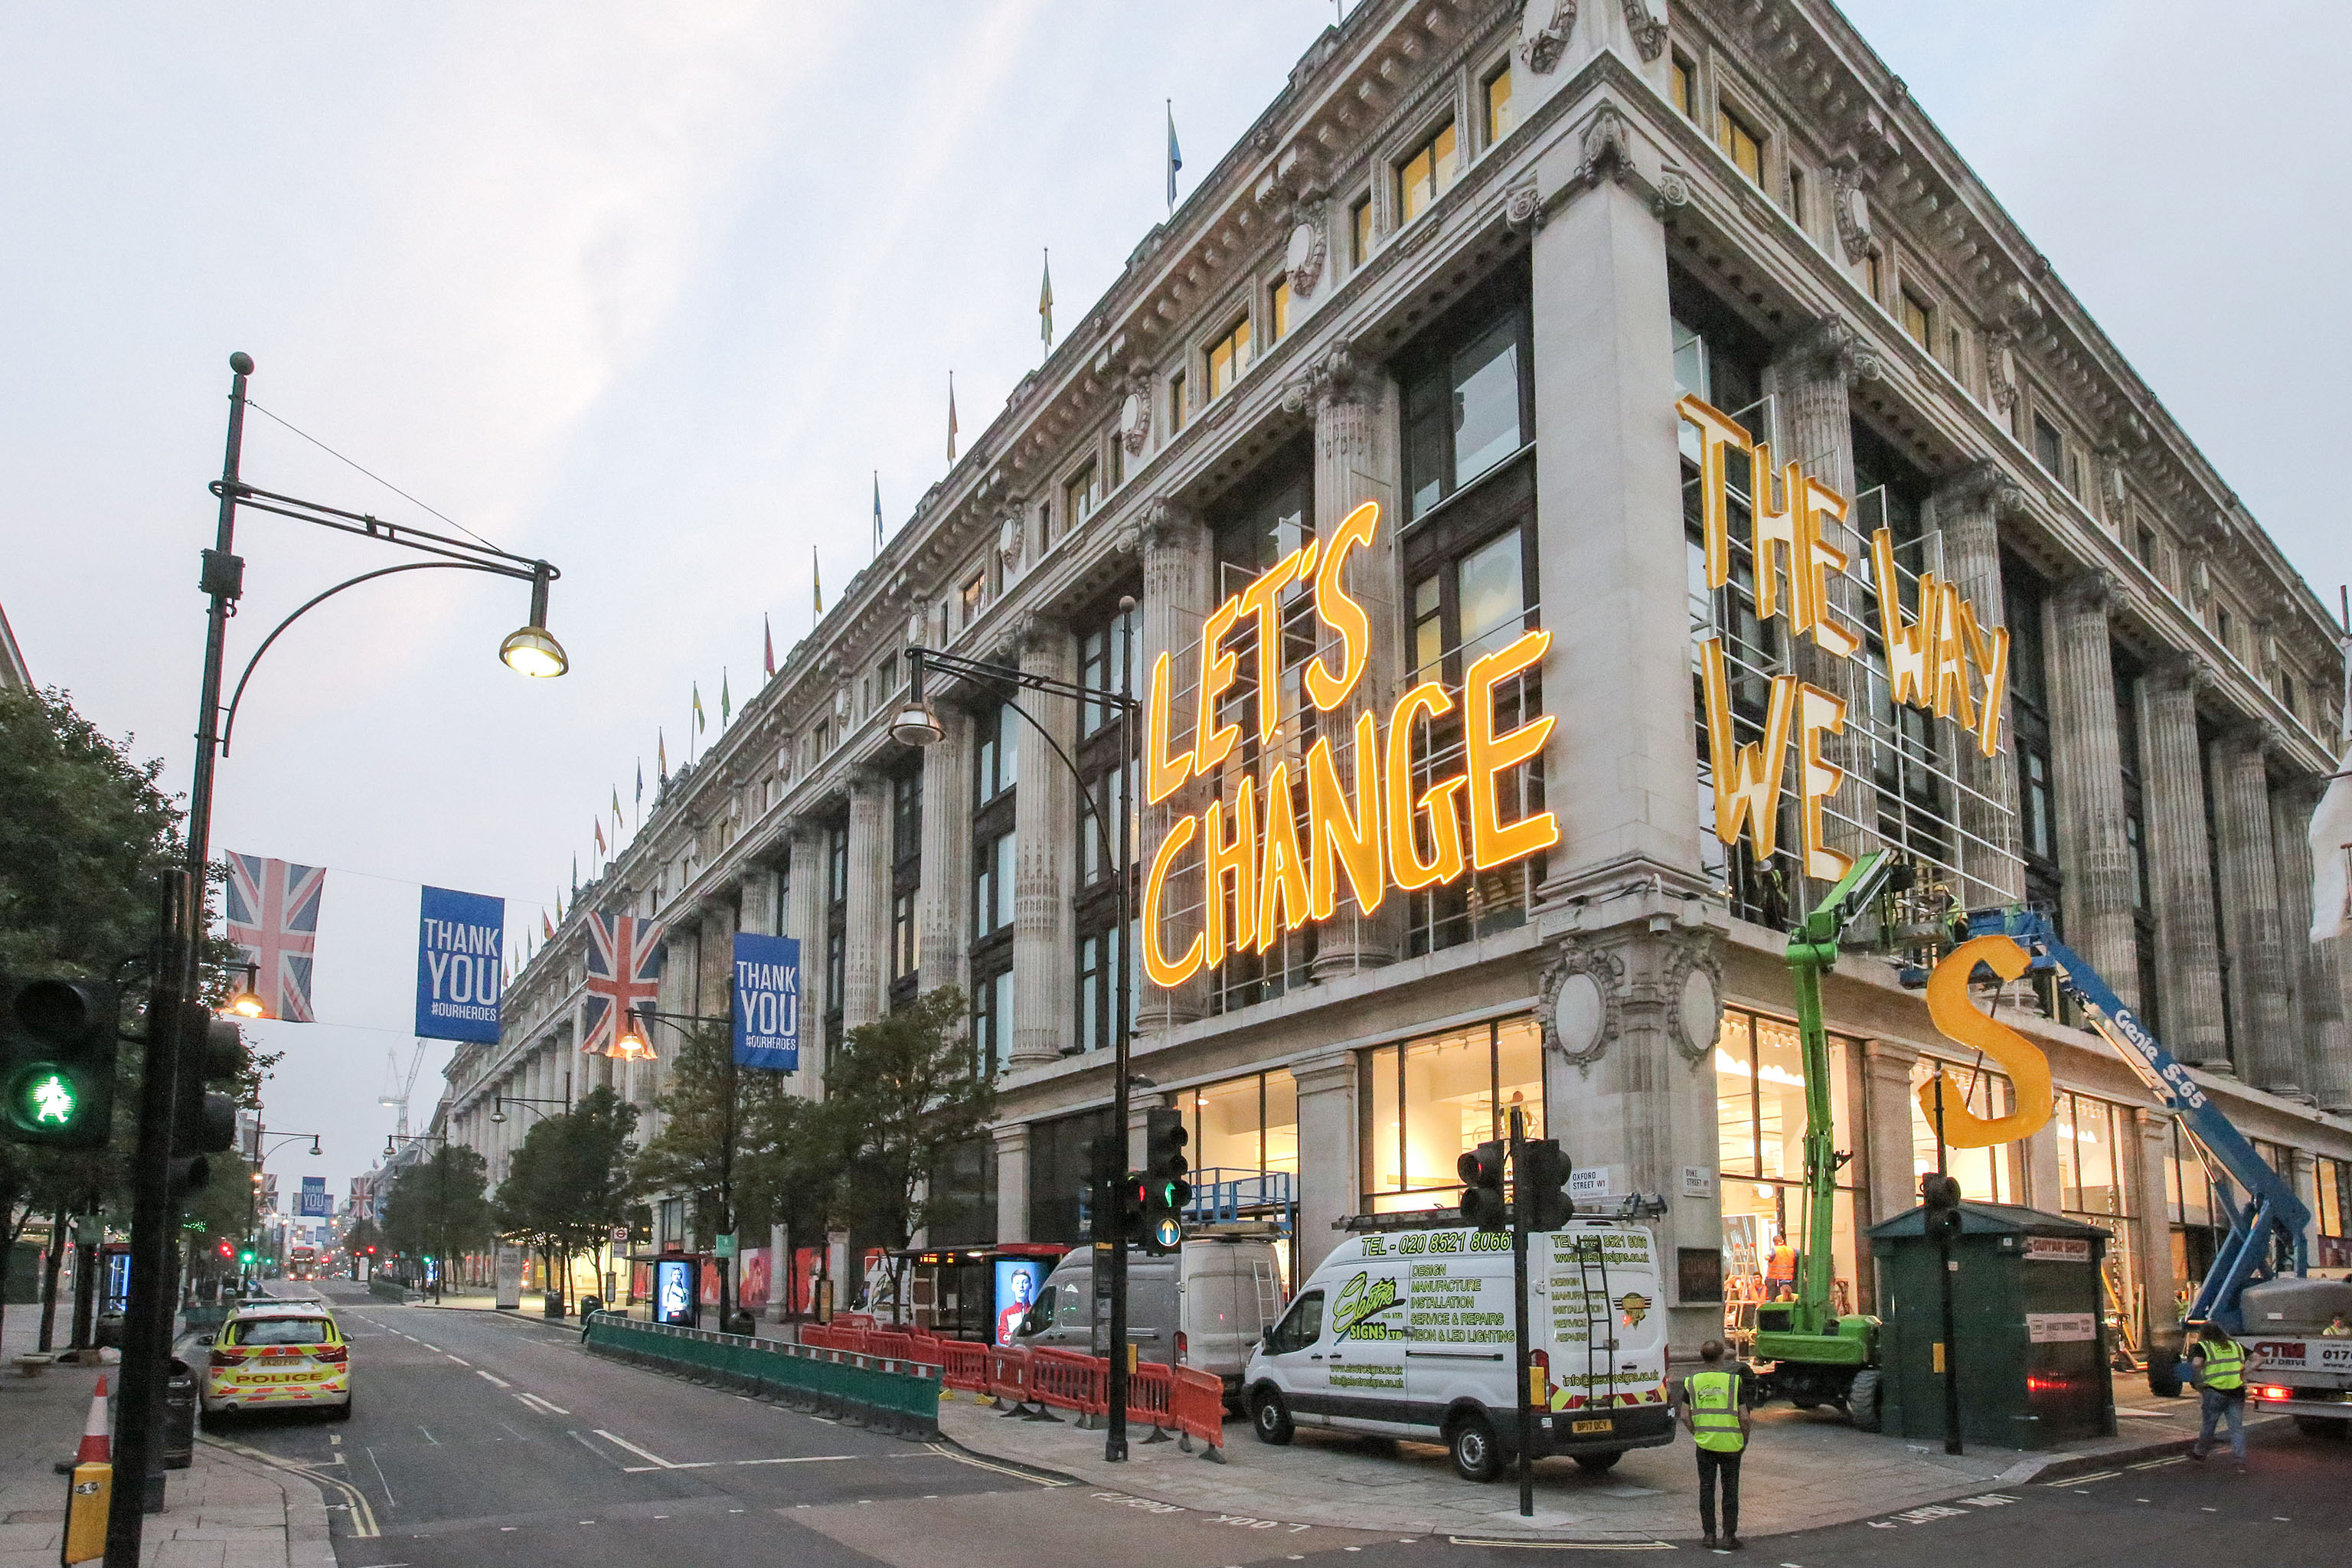 Signage specialists install 'Let's Change The Way We Shop' sign ahead of the unveiling of Selfridges' transformational sustainability initiative, Project Earth, with five year commitments to change the way we shop. Launching tomorrow, Monday 17 August.